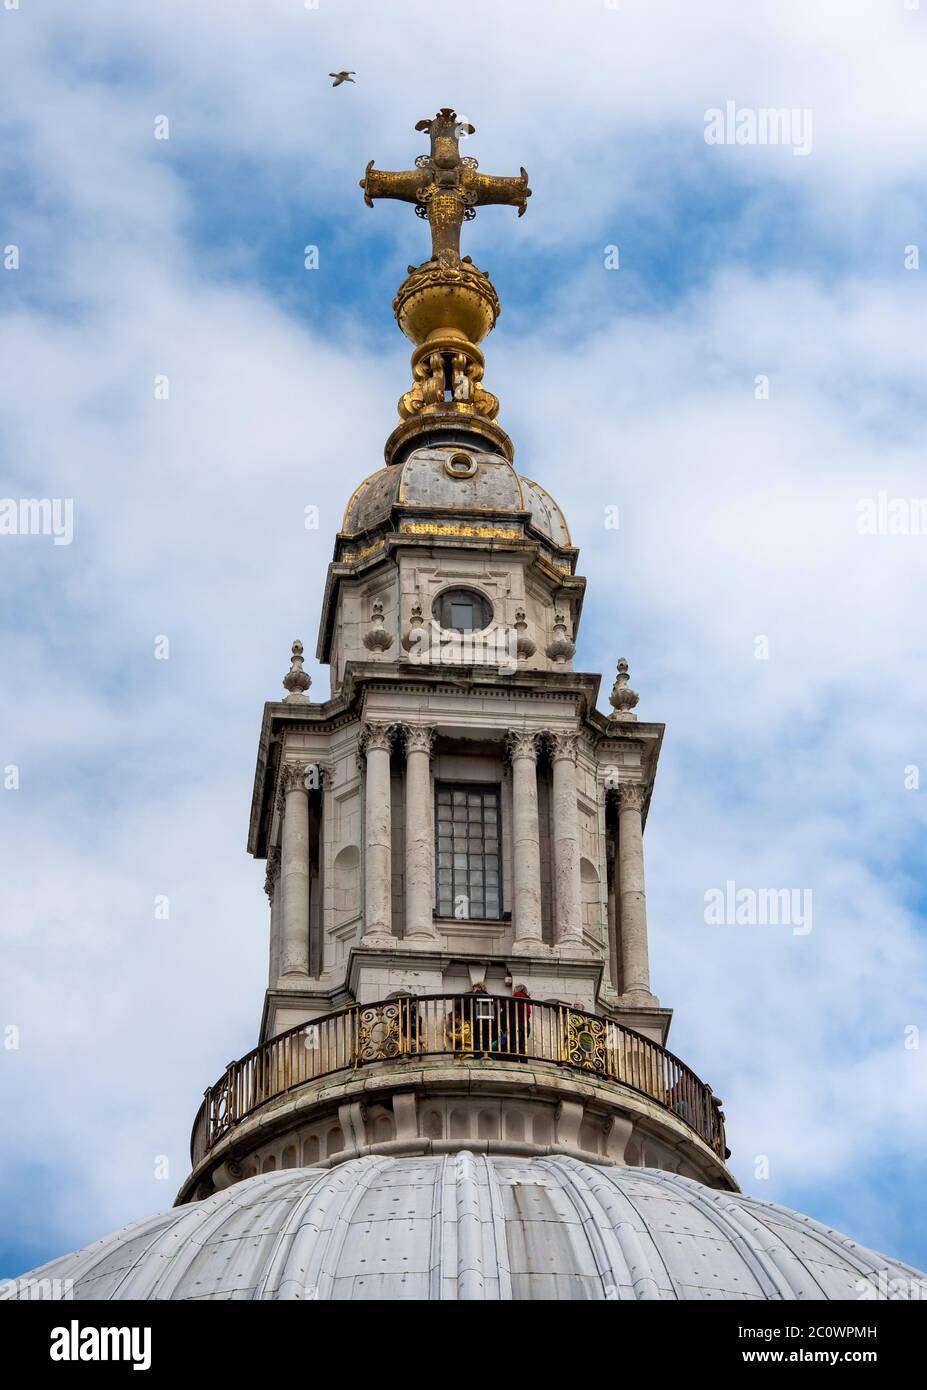 St Paul S Cathedral London England Golden Gallery Above The Dome Stock Photo Alamy